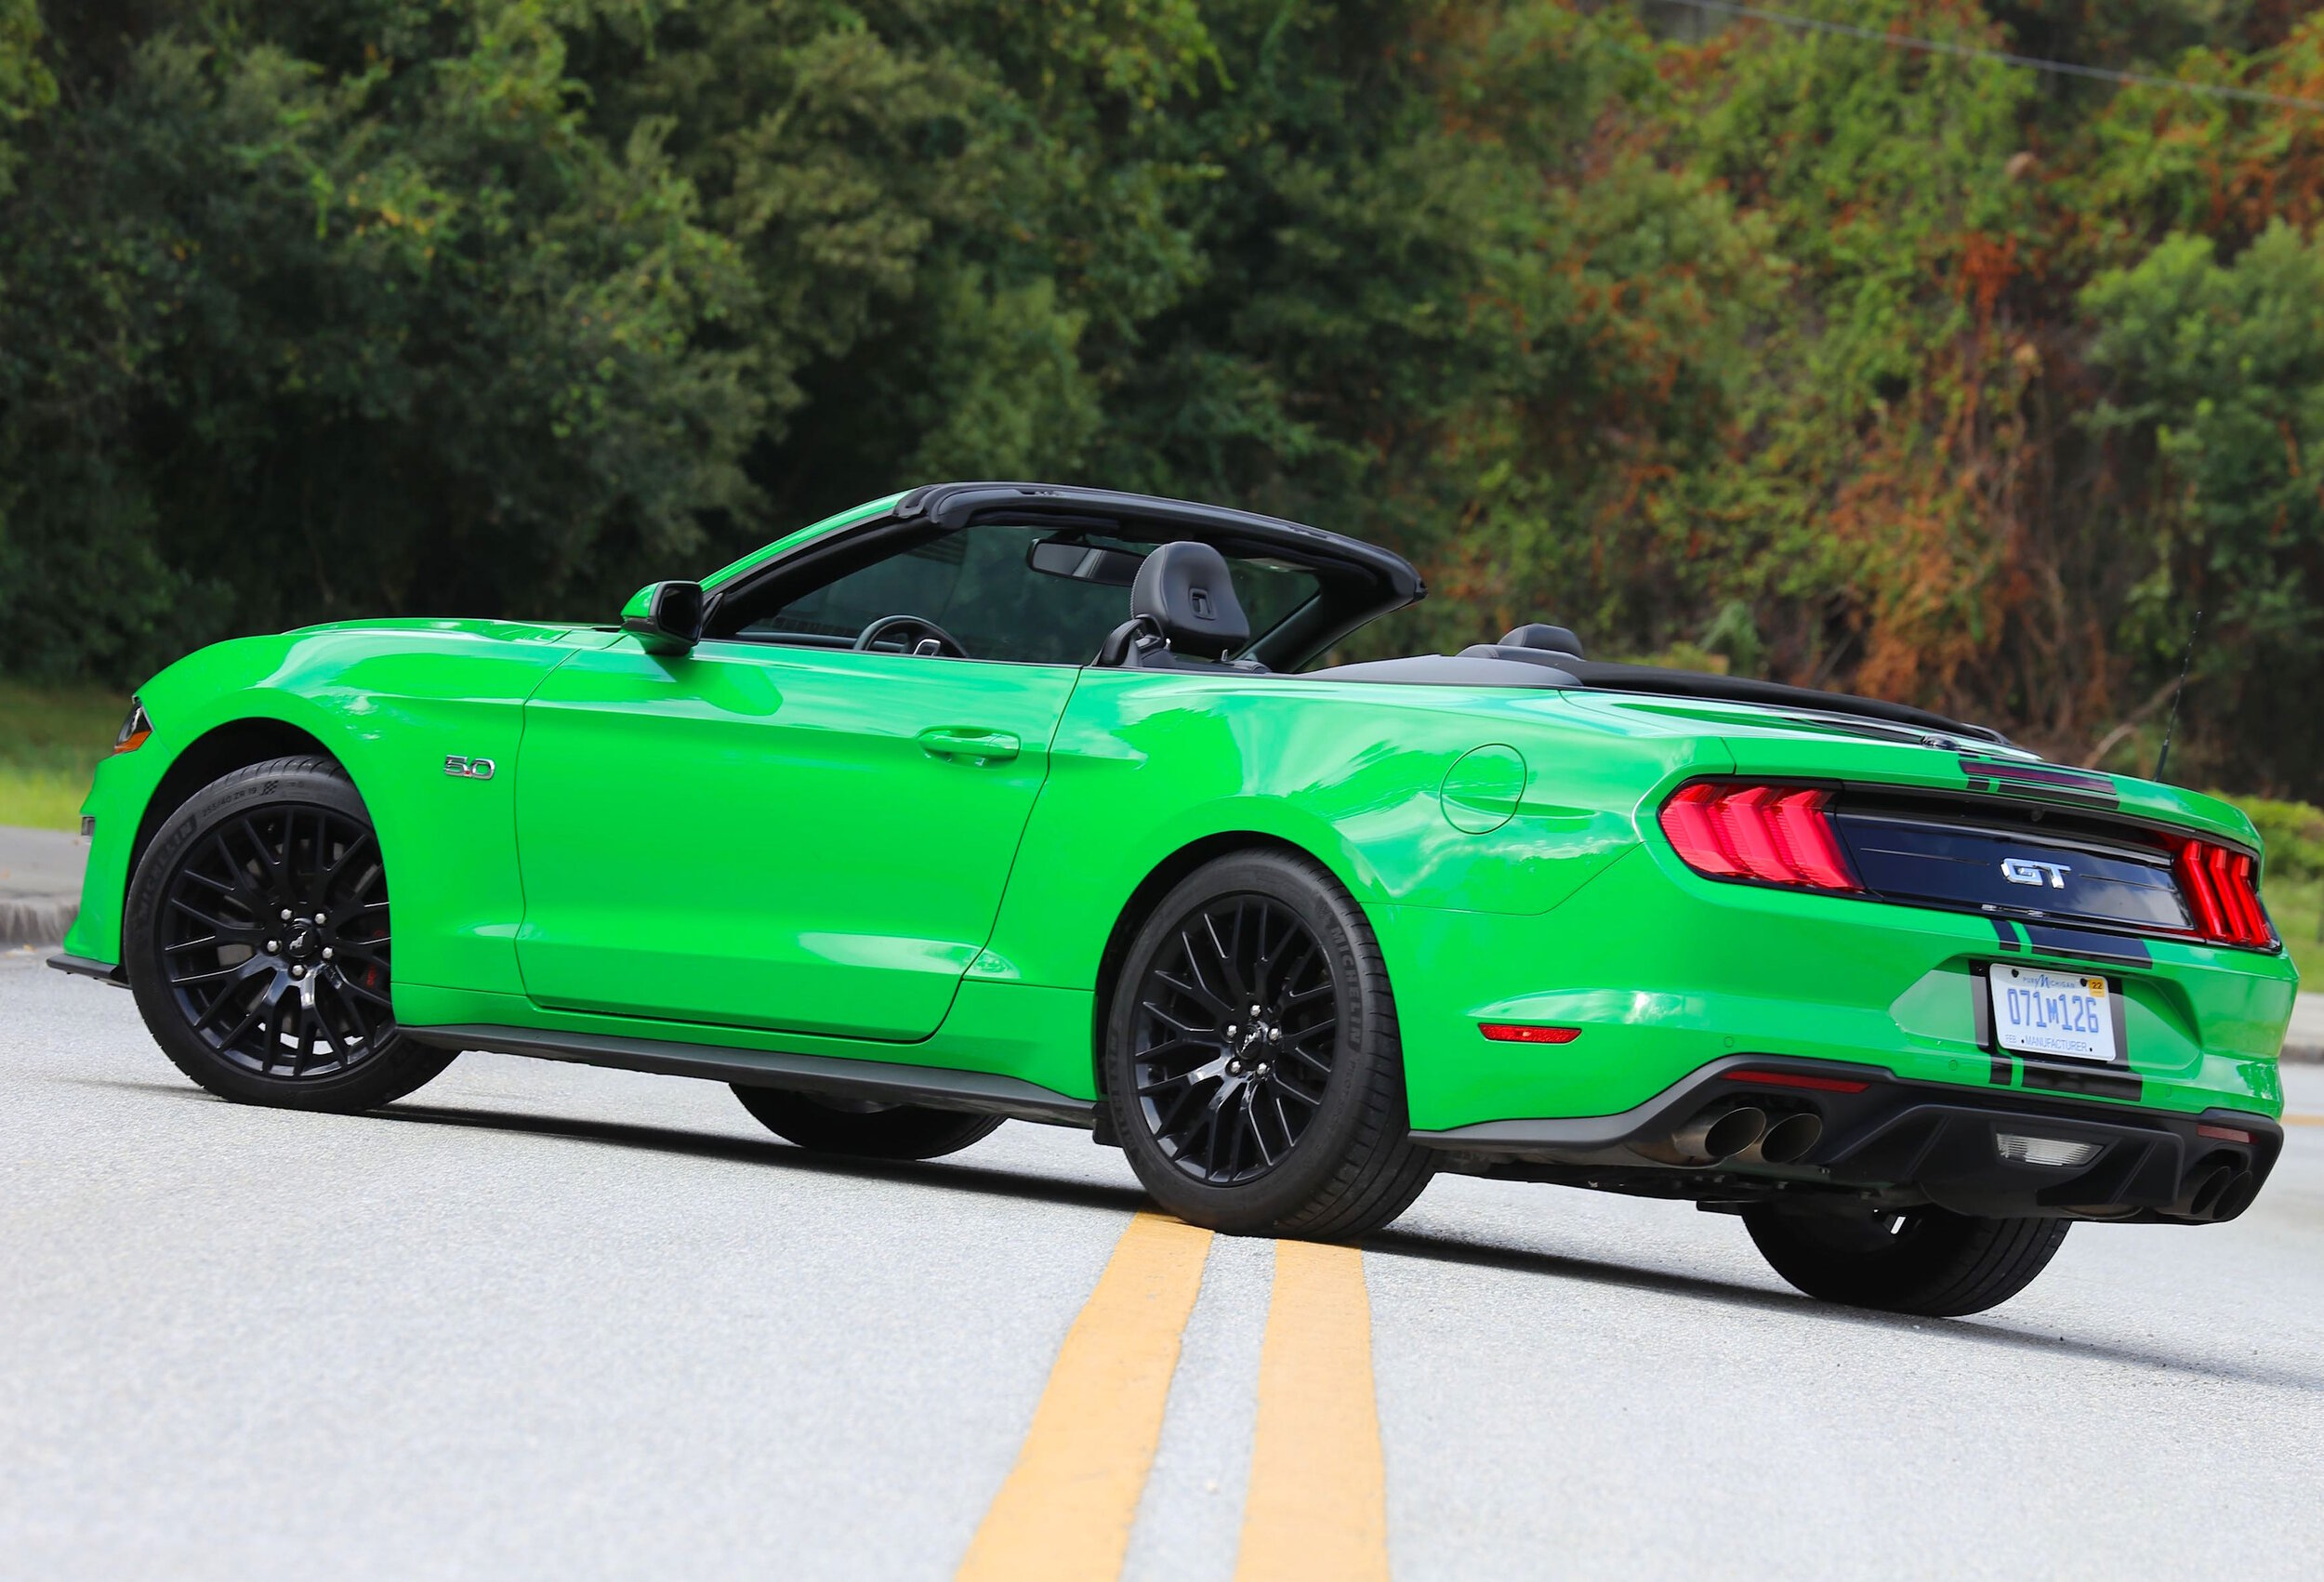 2019-ford-mustang-gt-convertible-need-for-green.jpg